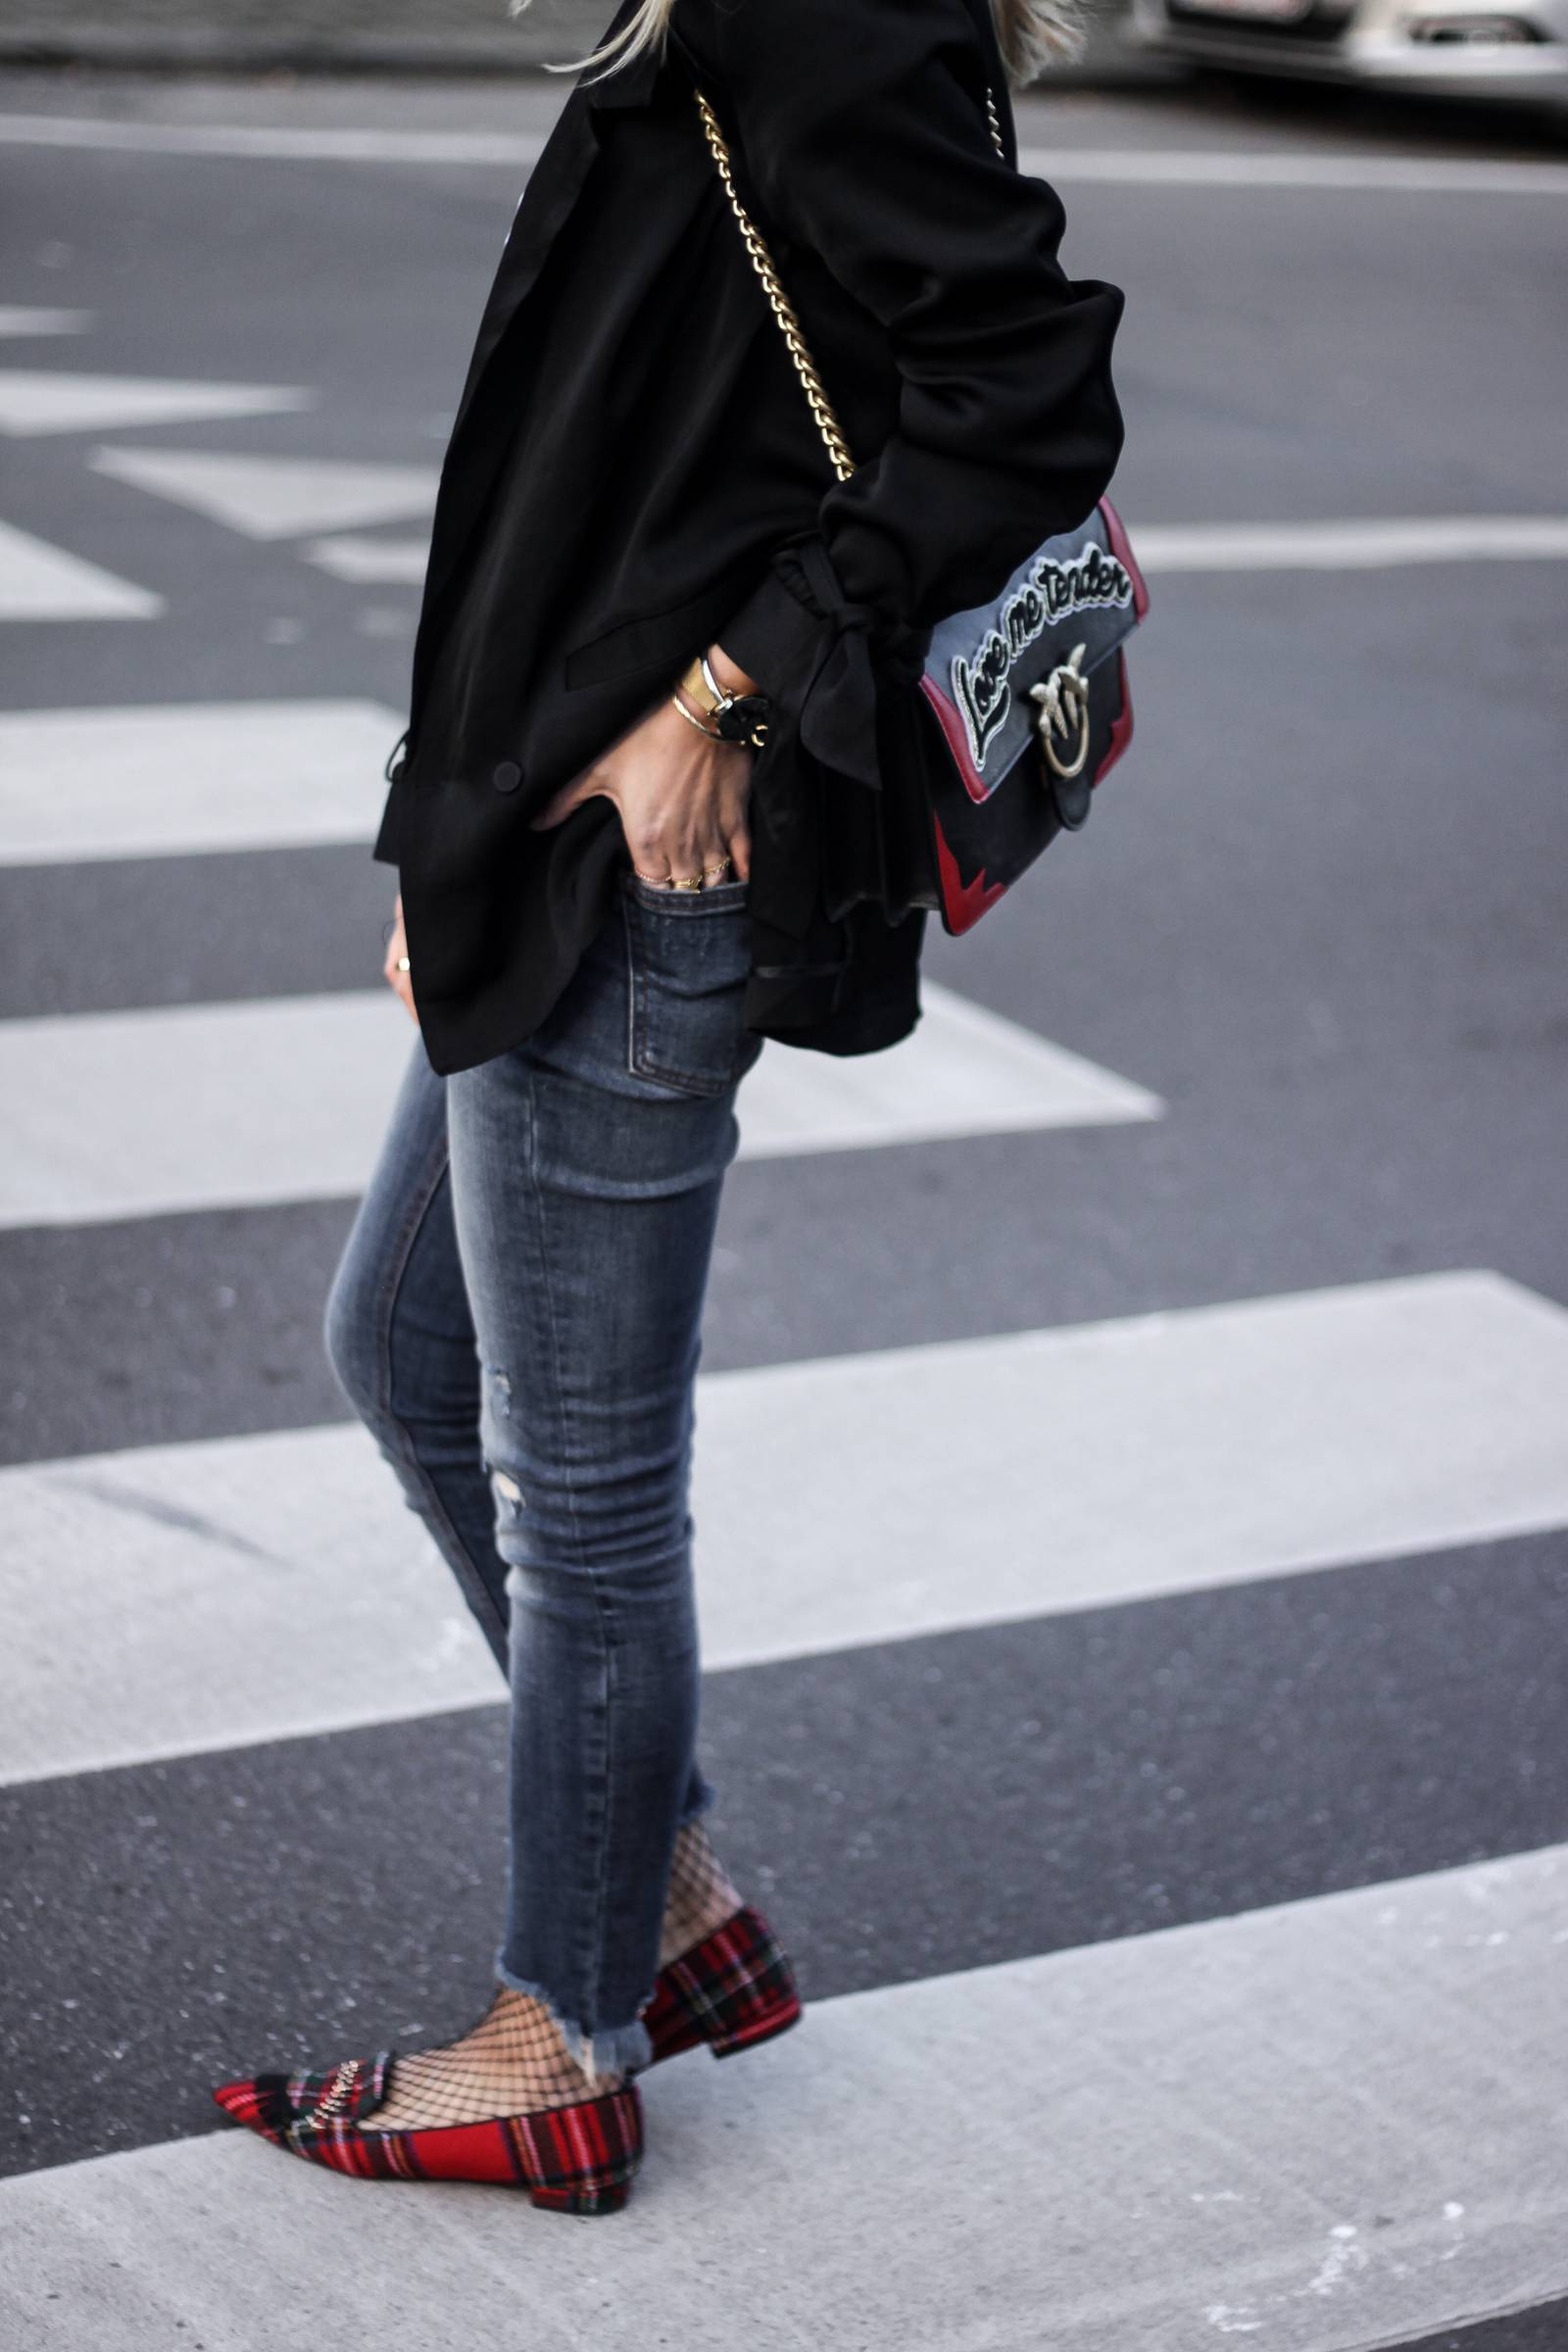 jeans and red loafers